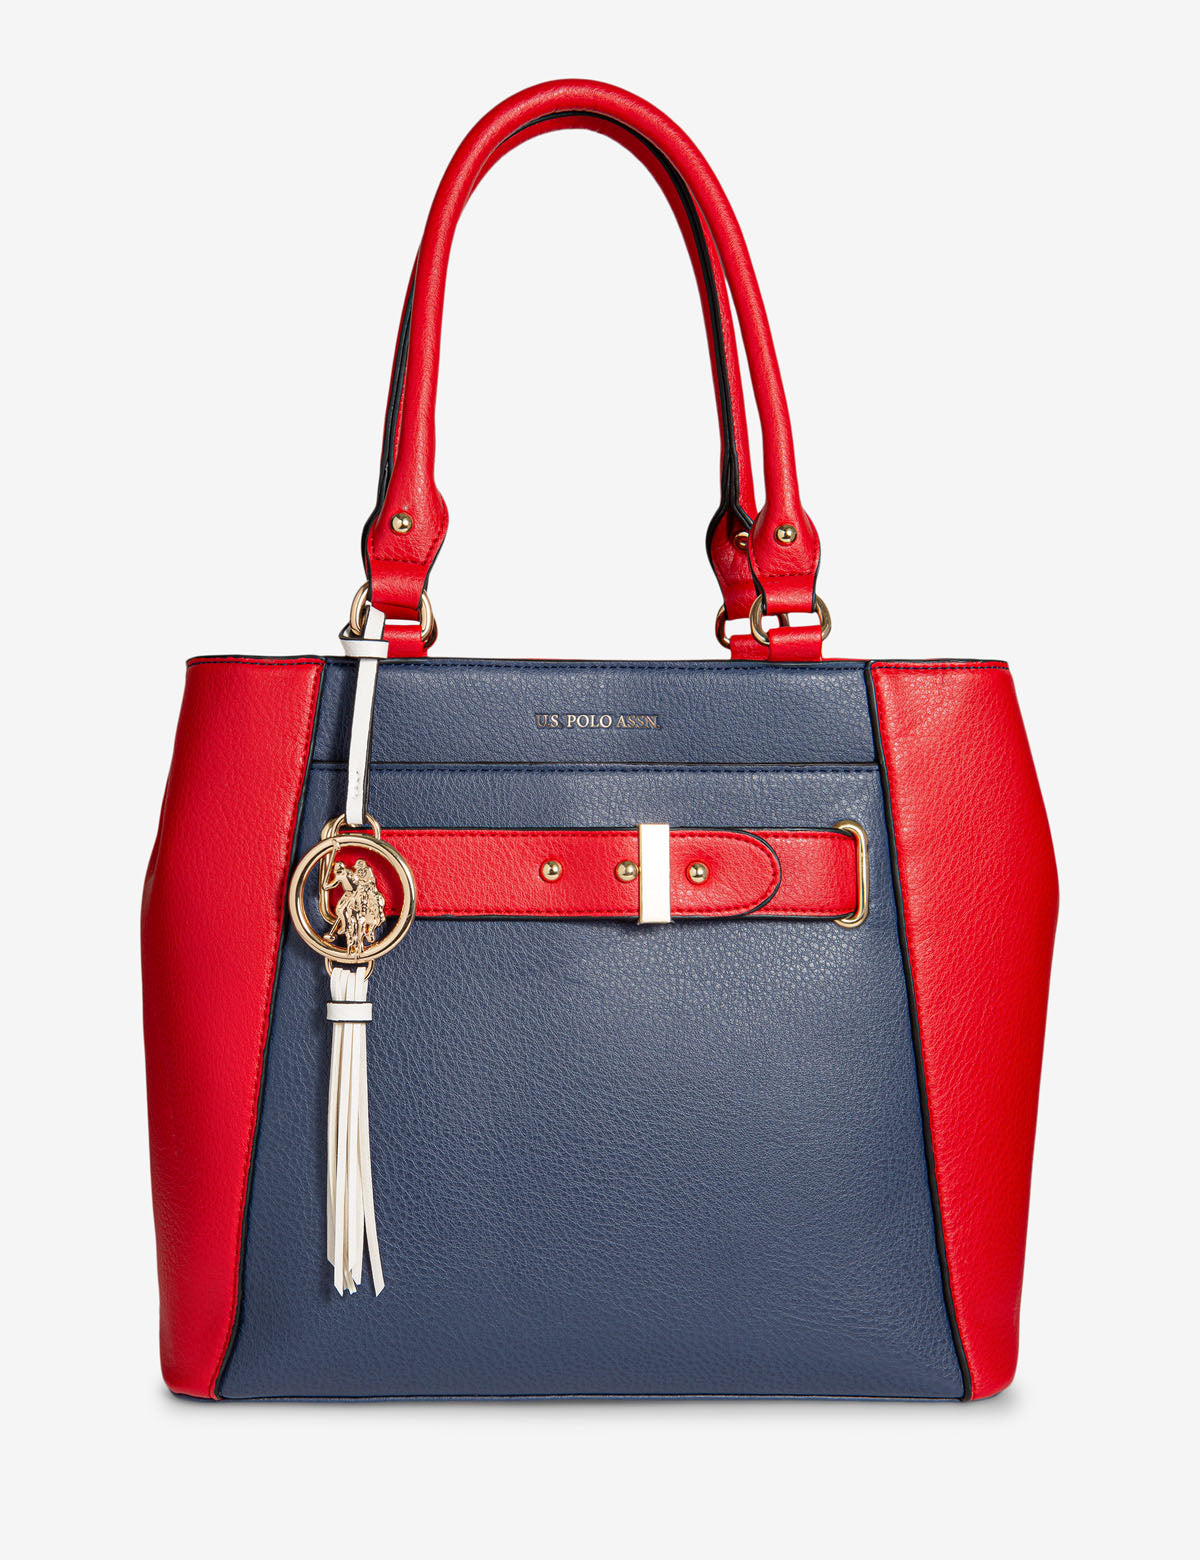 COLORBLOCK HANDBAG